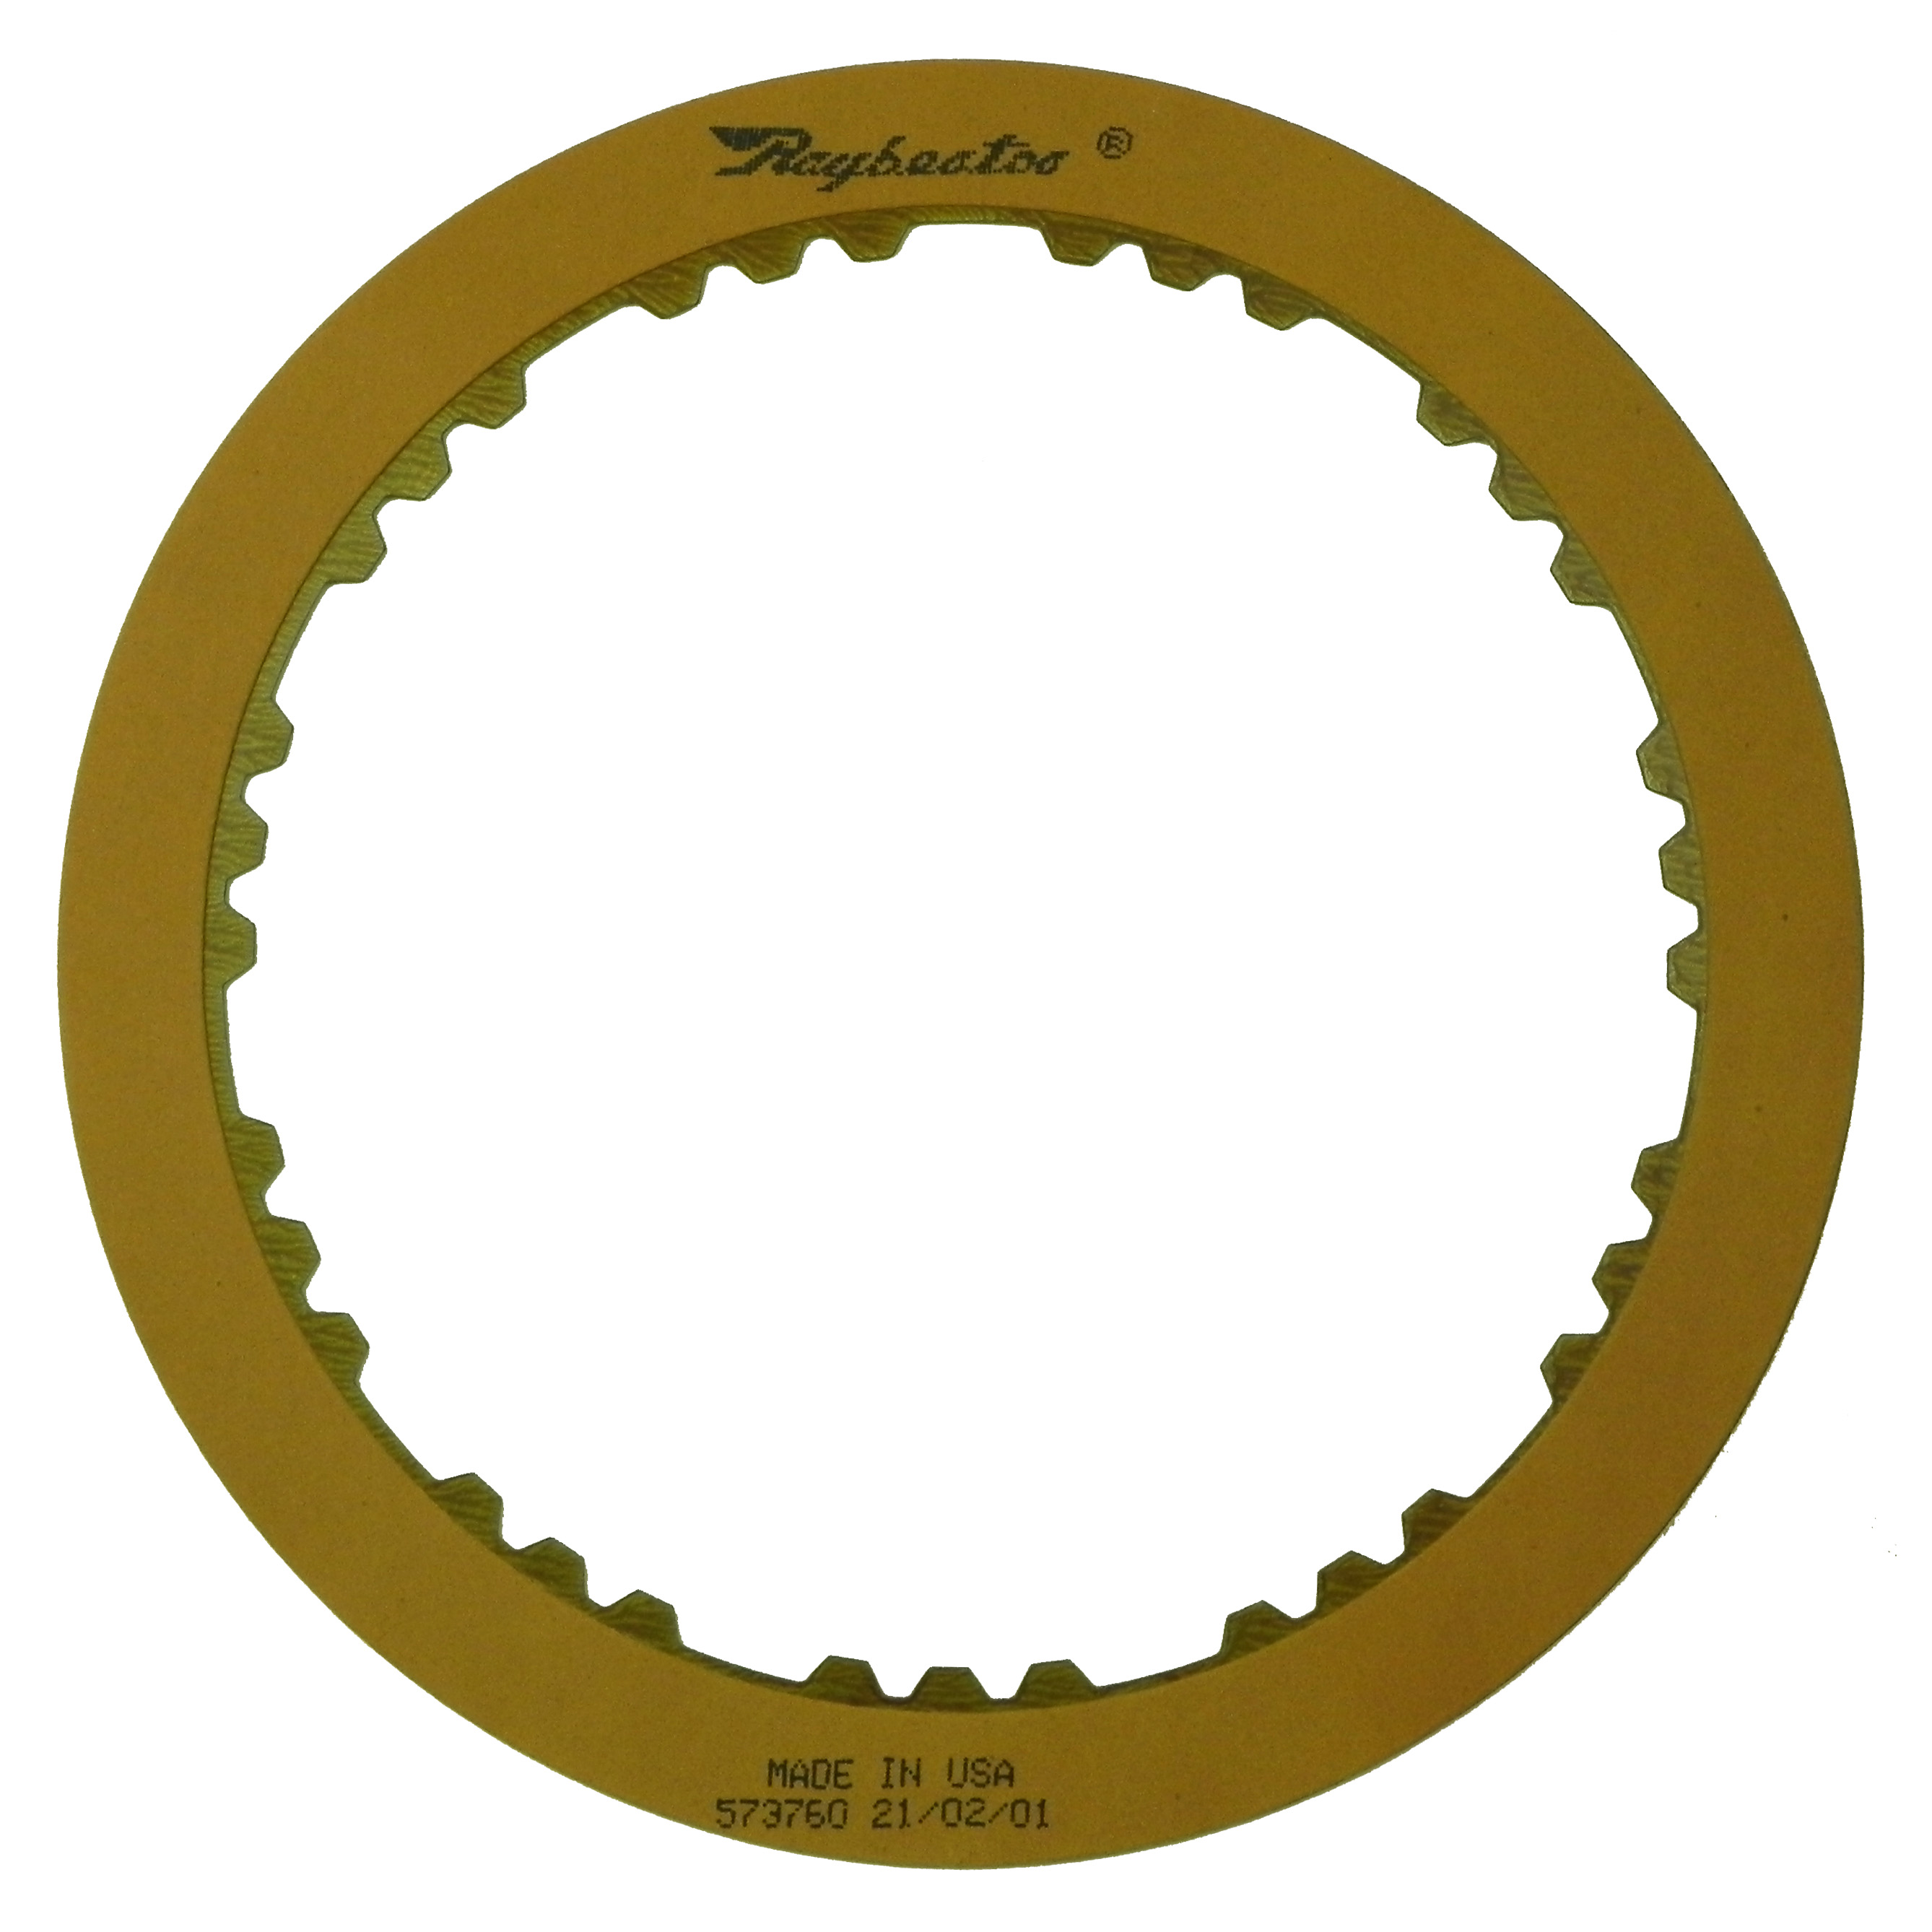 A40/41/43, A40D, A42D/DL, A43D/DE/DL, A44DE/DL, A45DF/DL, AW55/70/71, KM148, 03-72LE OE Replacement Friction Clutch Plate